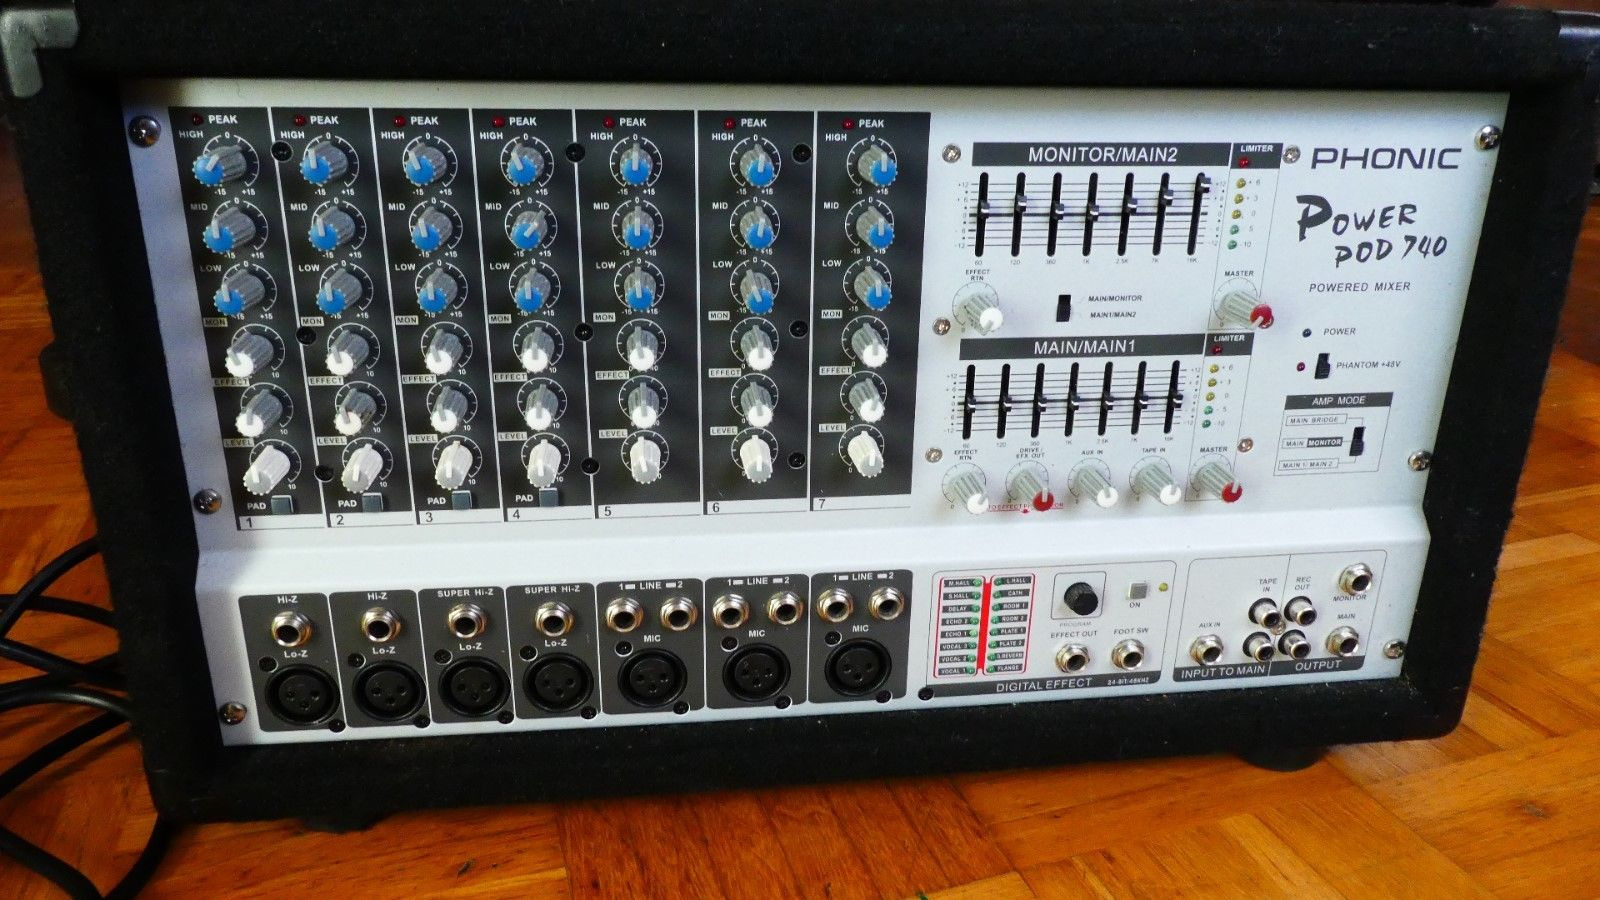 Phonic Powermixer 740 Plus Image